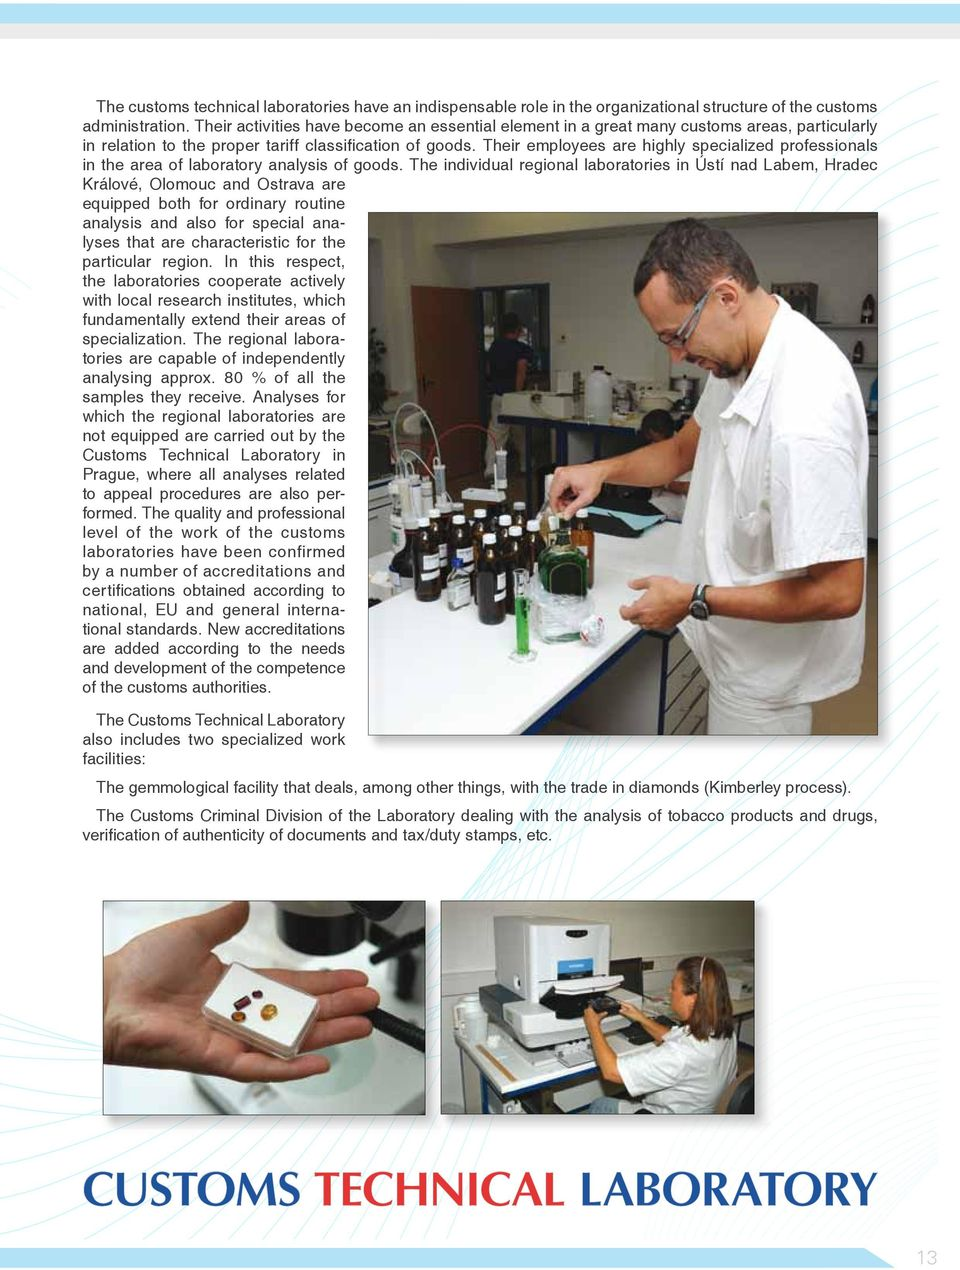 Their employees are highly specialized professionals in the area of laboratory analysis of goods.